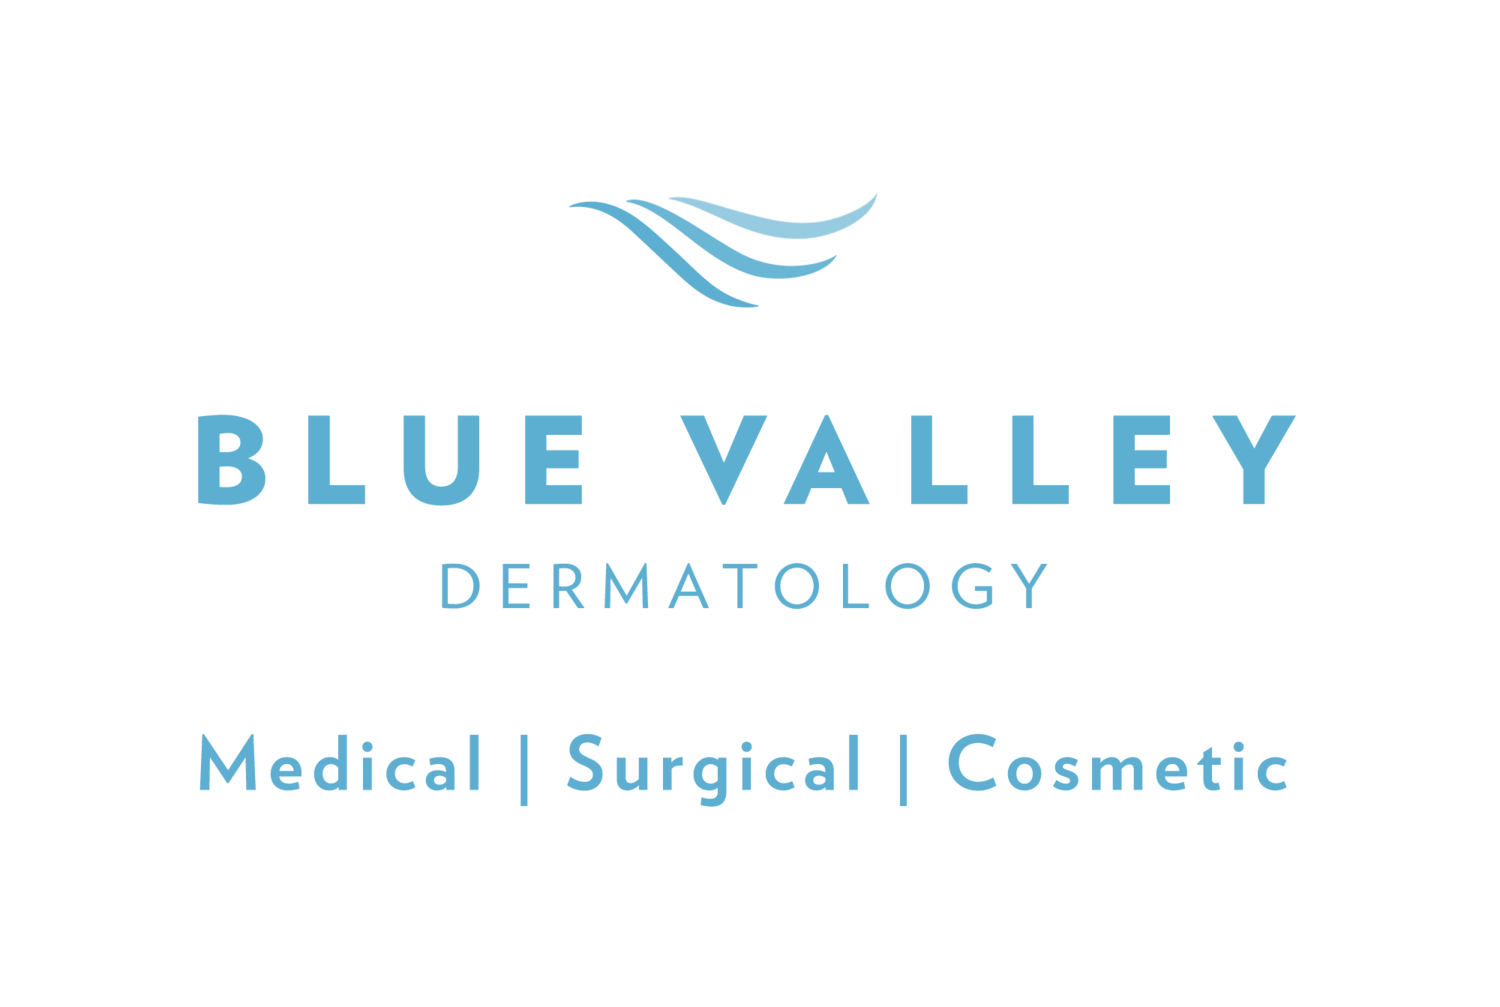 Blue Valley Dermatology